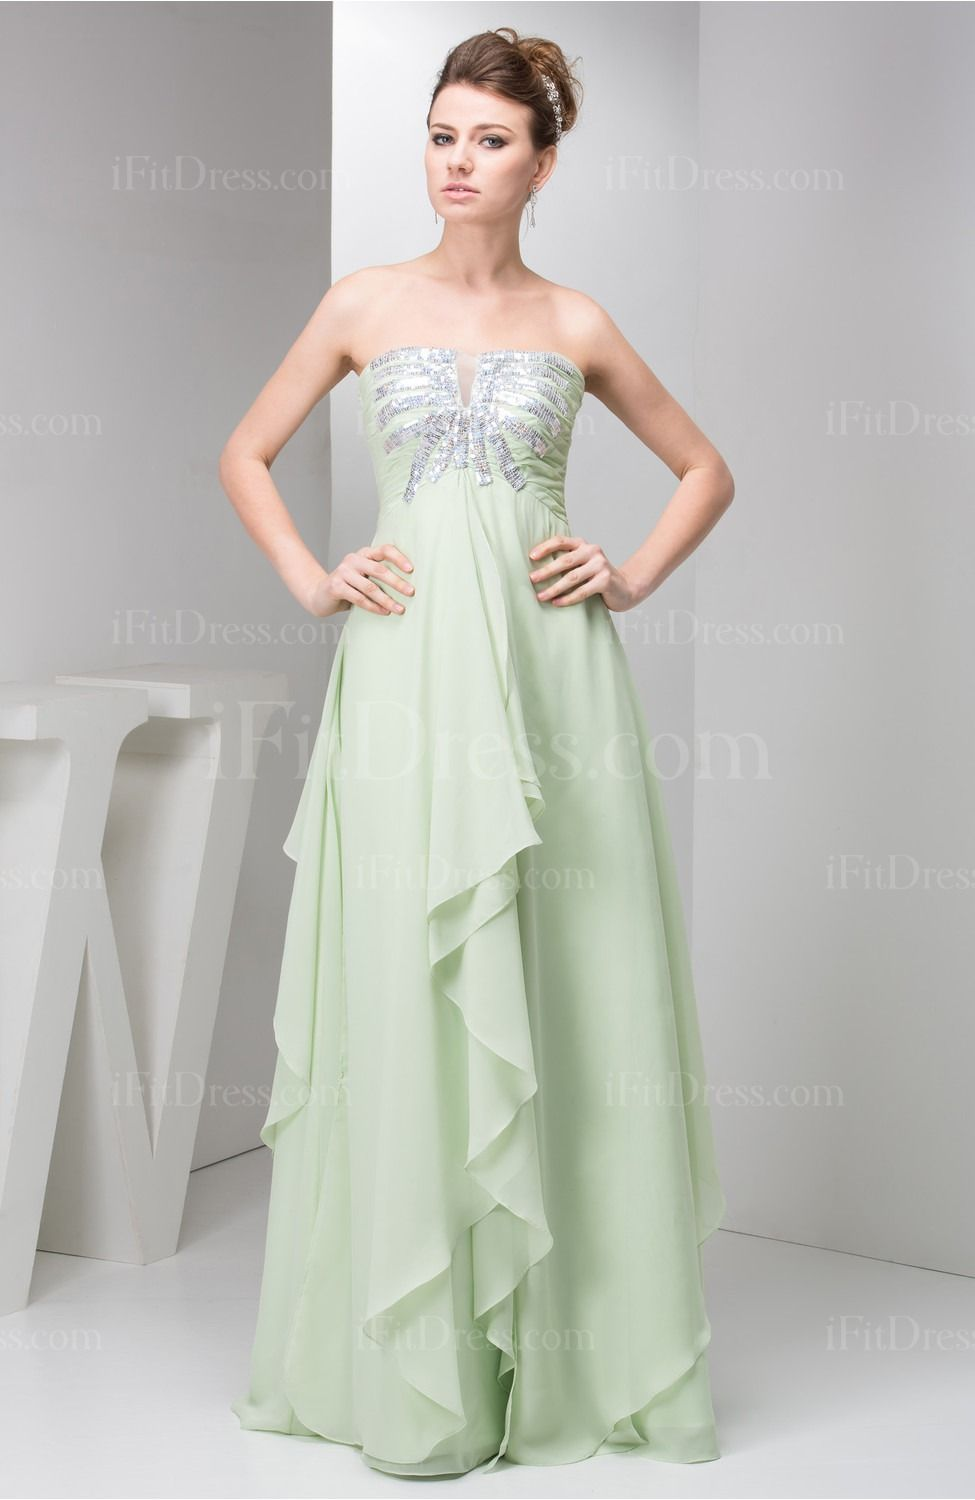 Green dress for wedding  Affordable Wedding Guest Dress Long Full Figure Autumn Low Back Chic